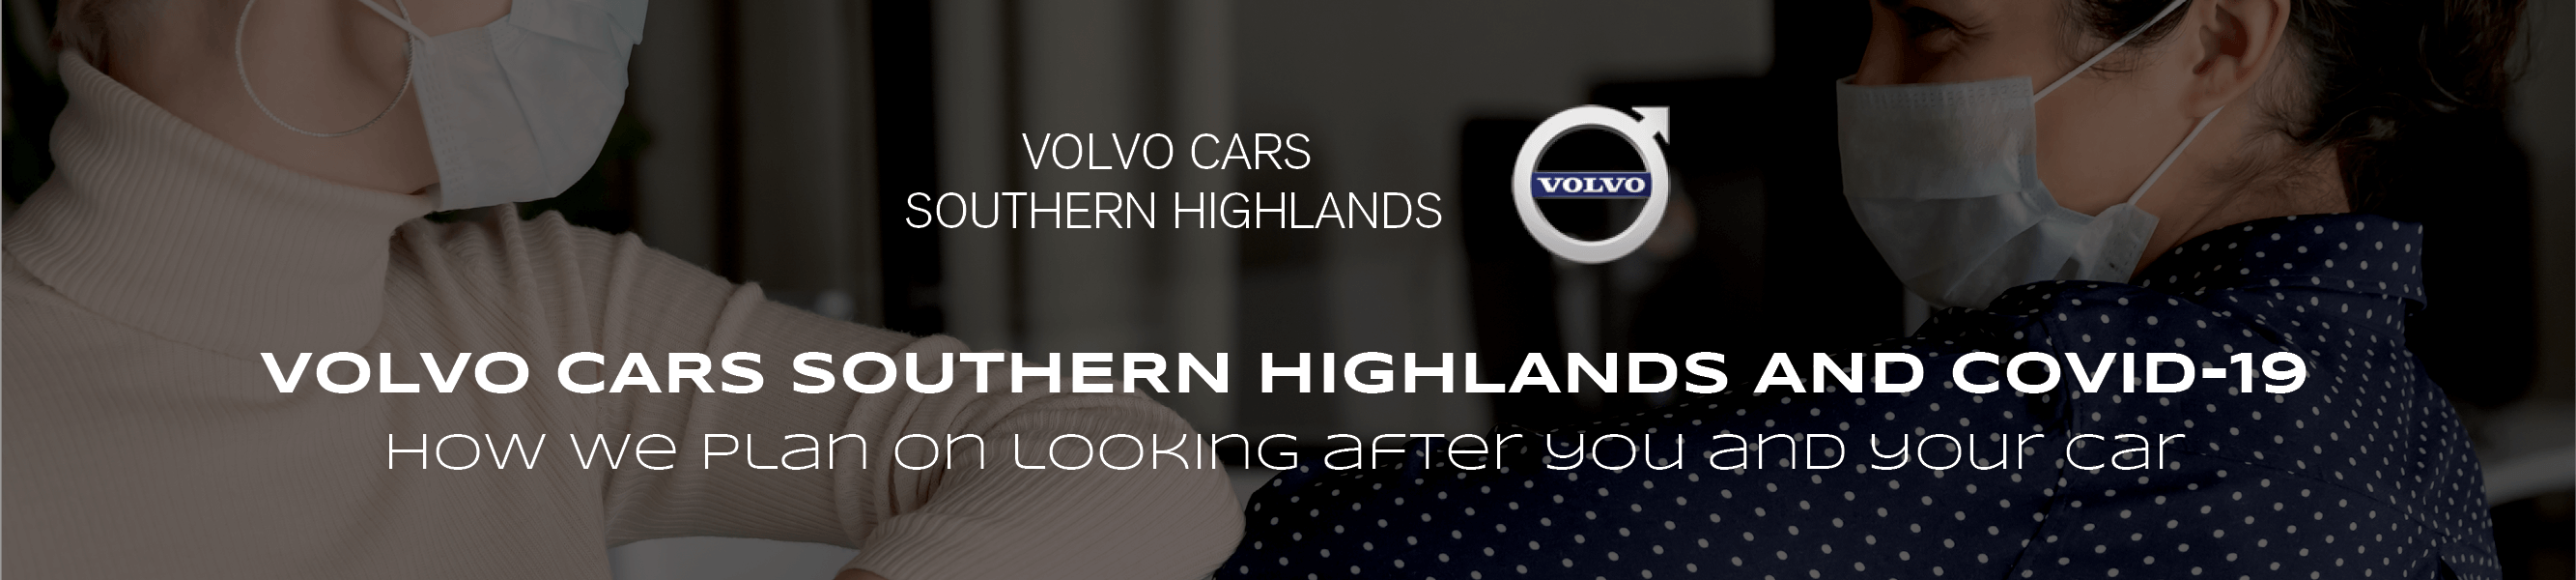 Volvo Cars Southern Highlands and COVID-19